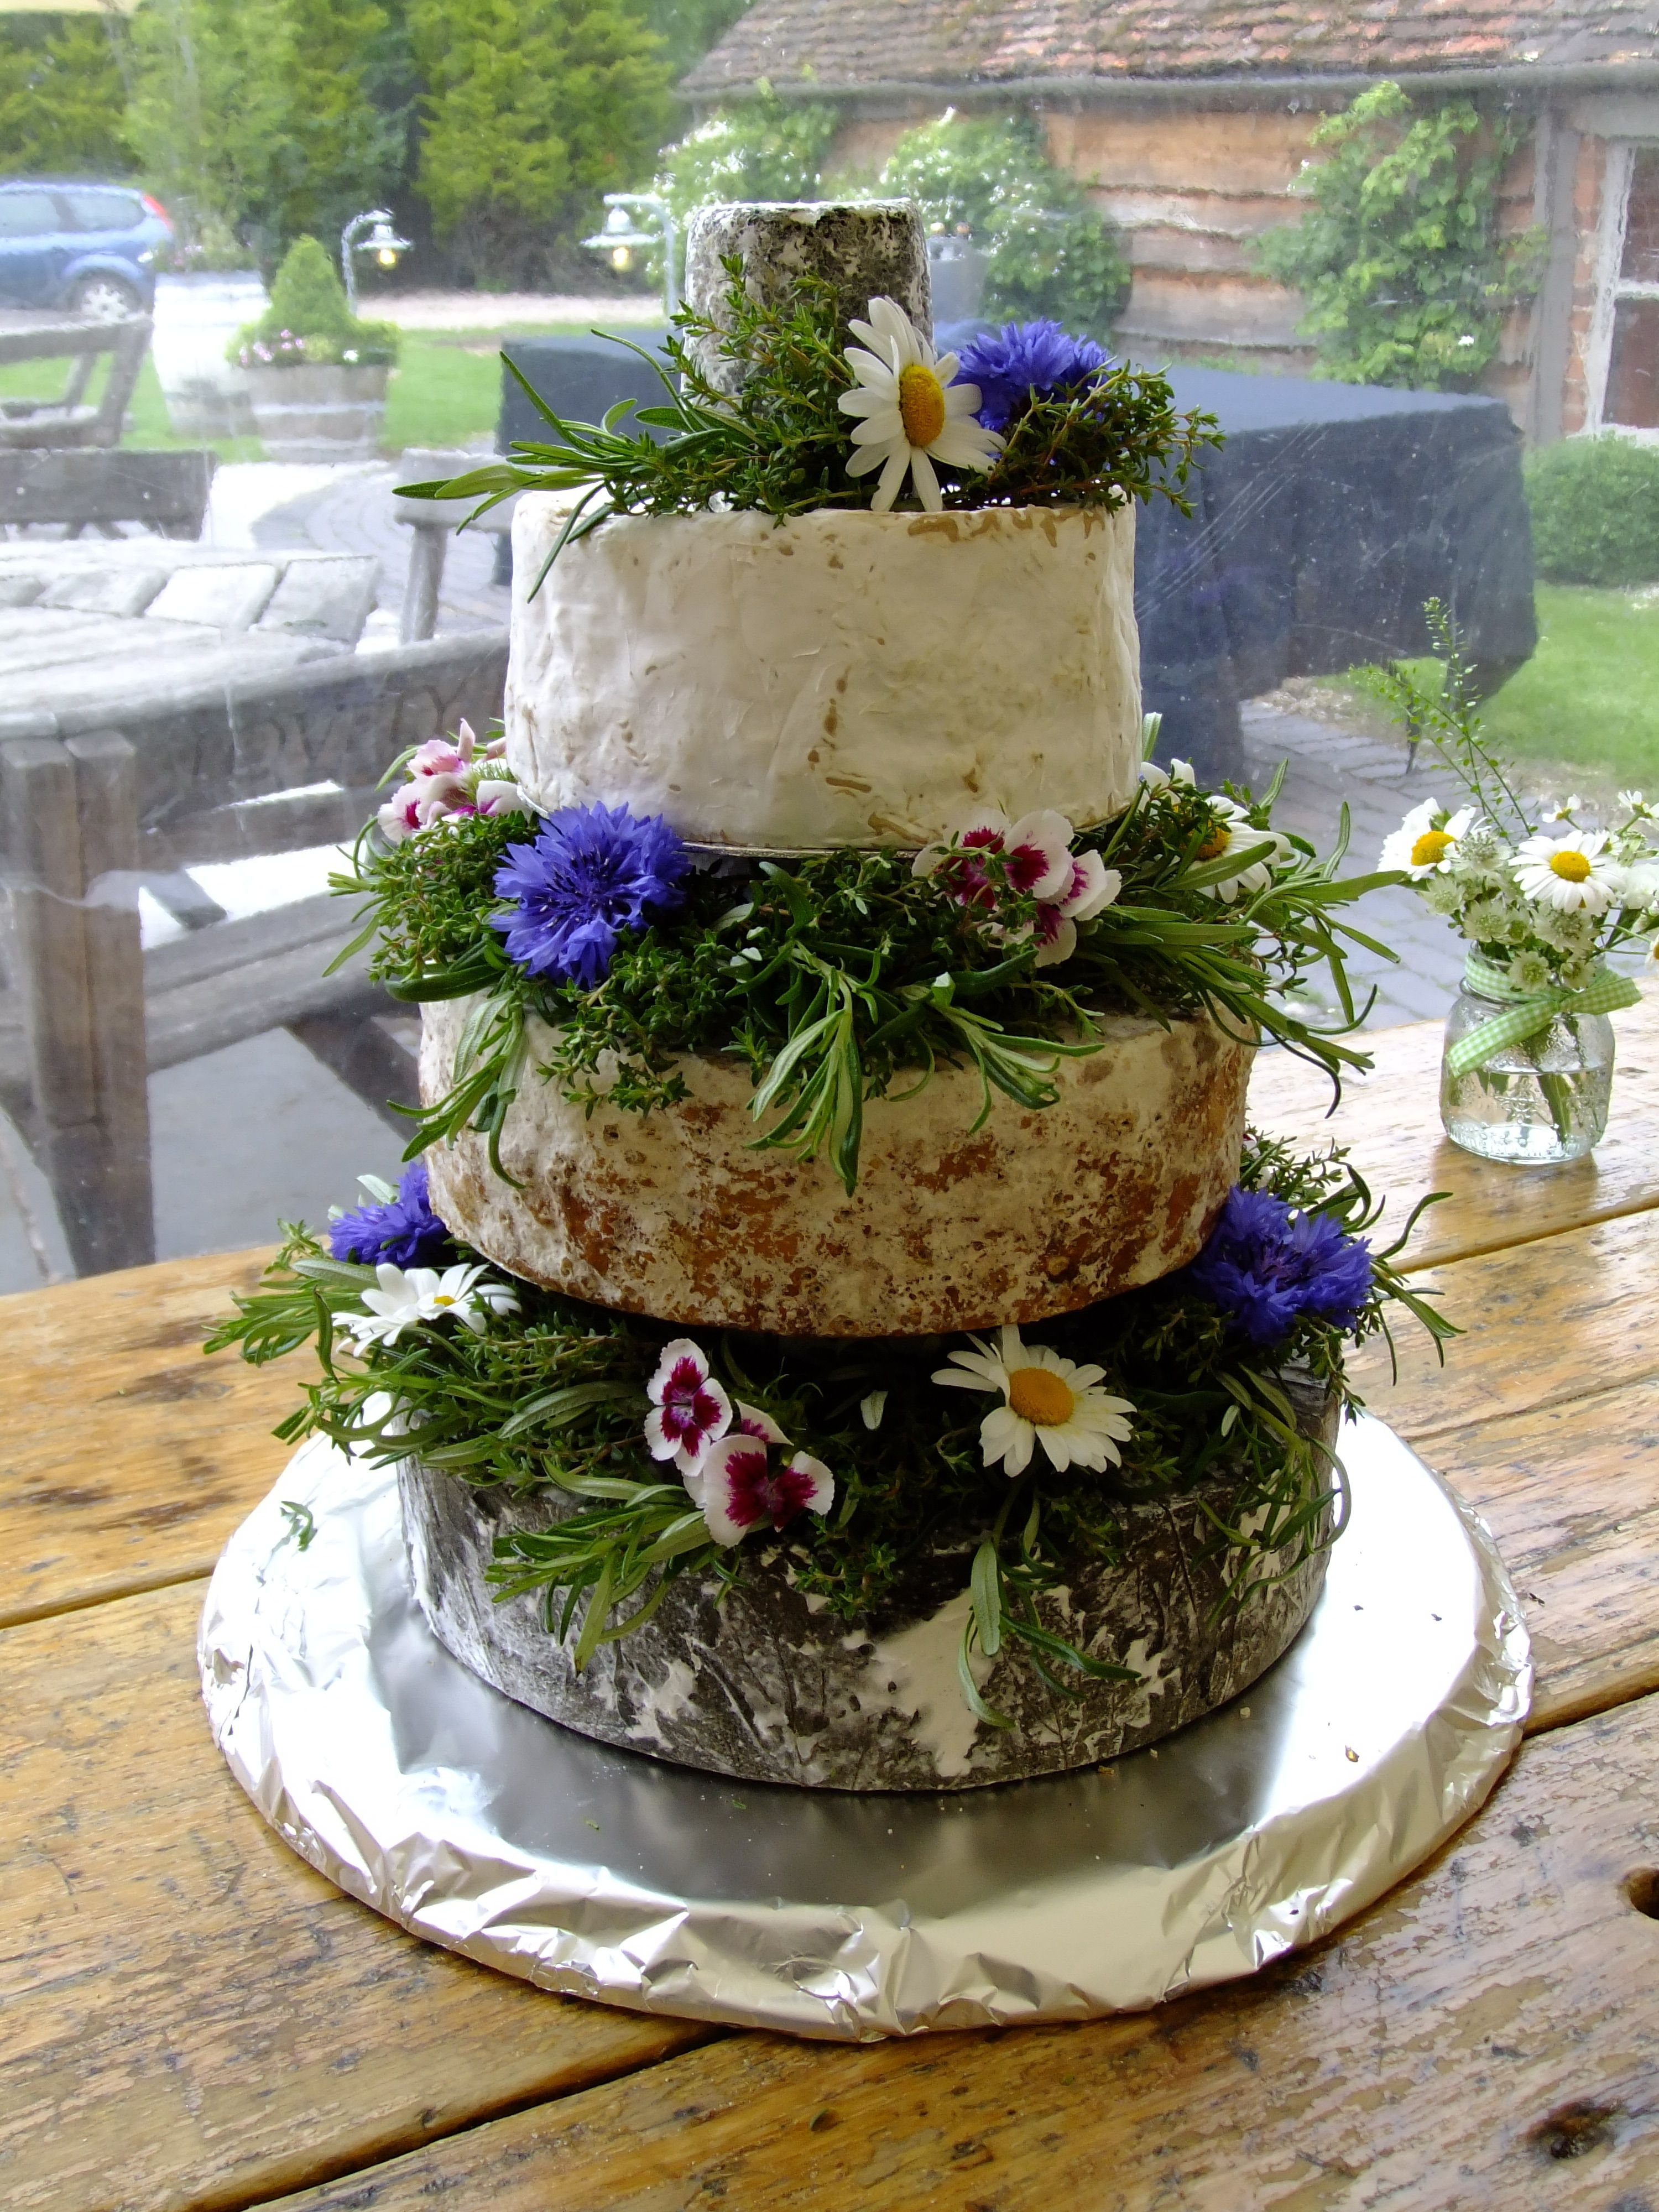 Cheese wedding cake decorated with edible fresh flowers